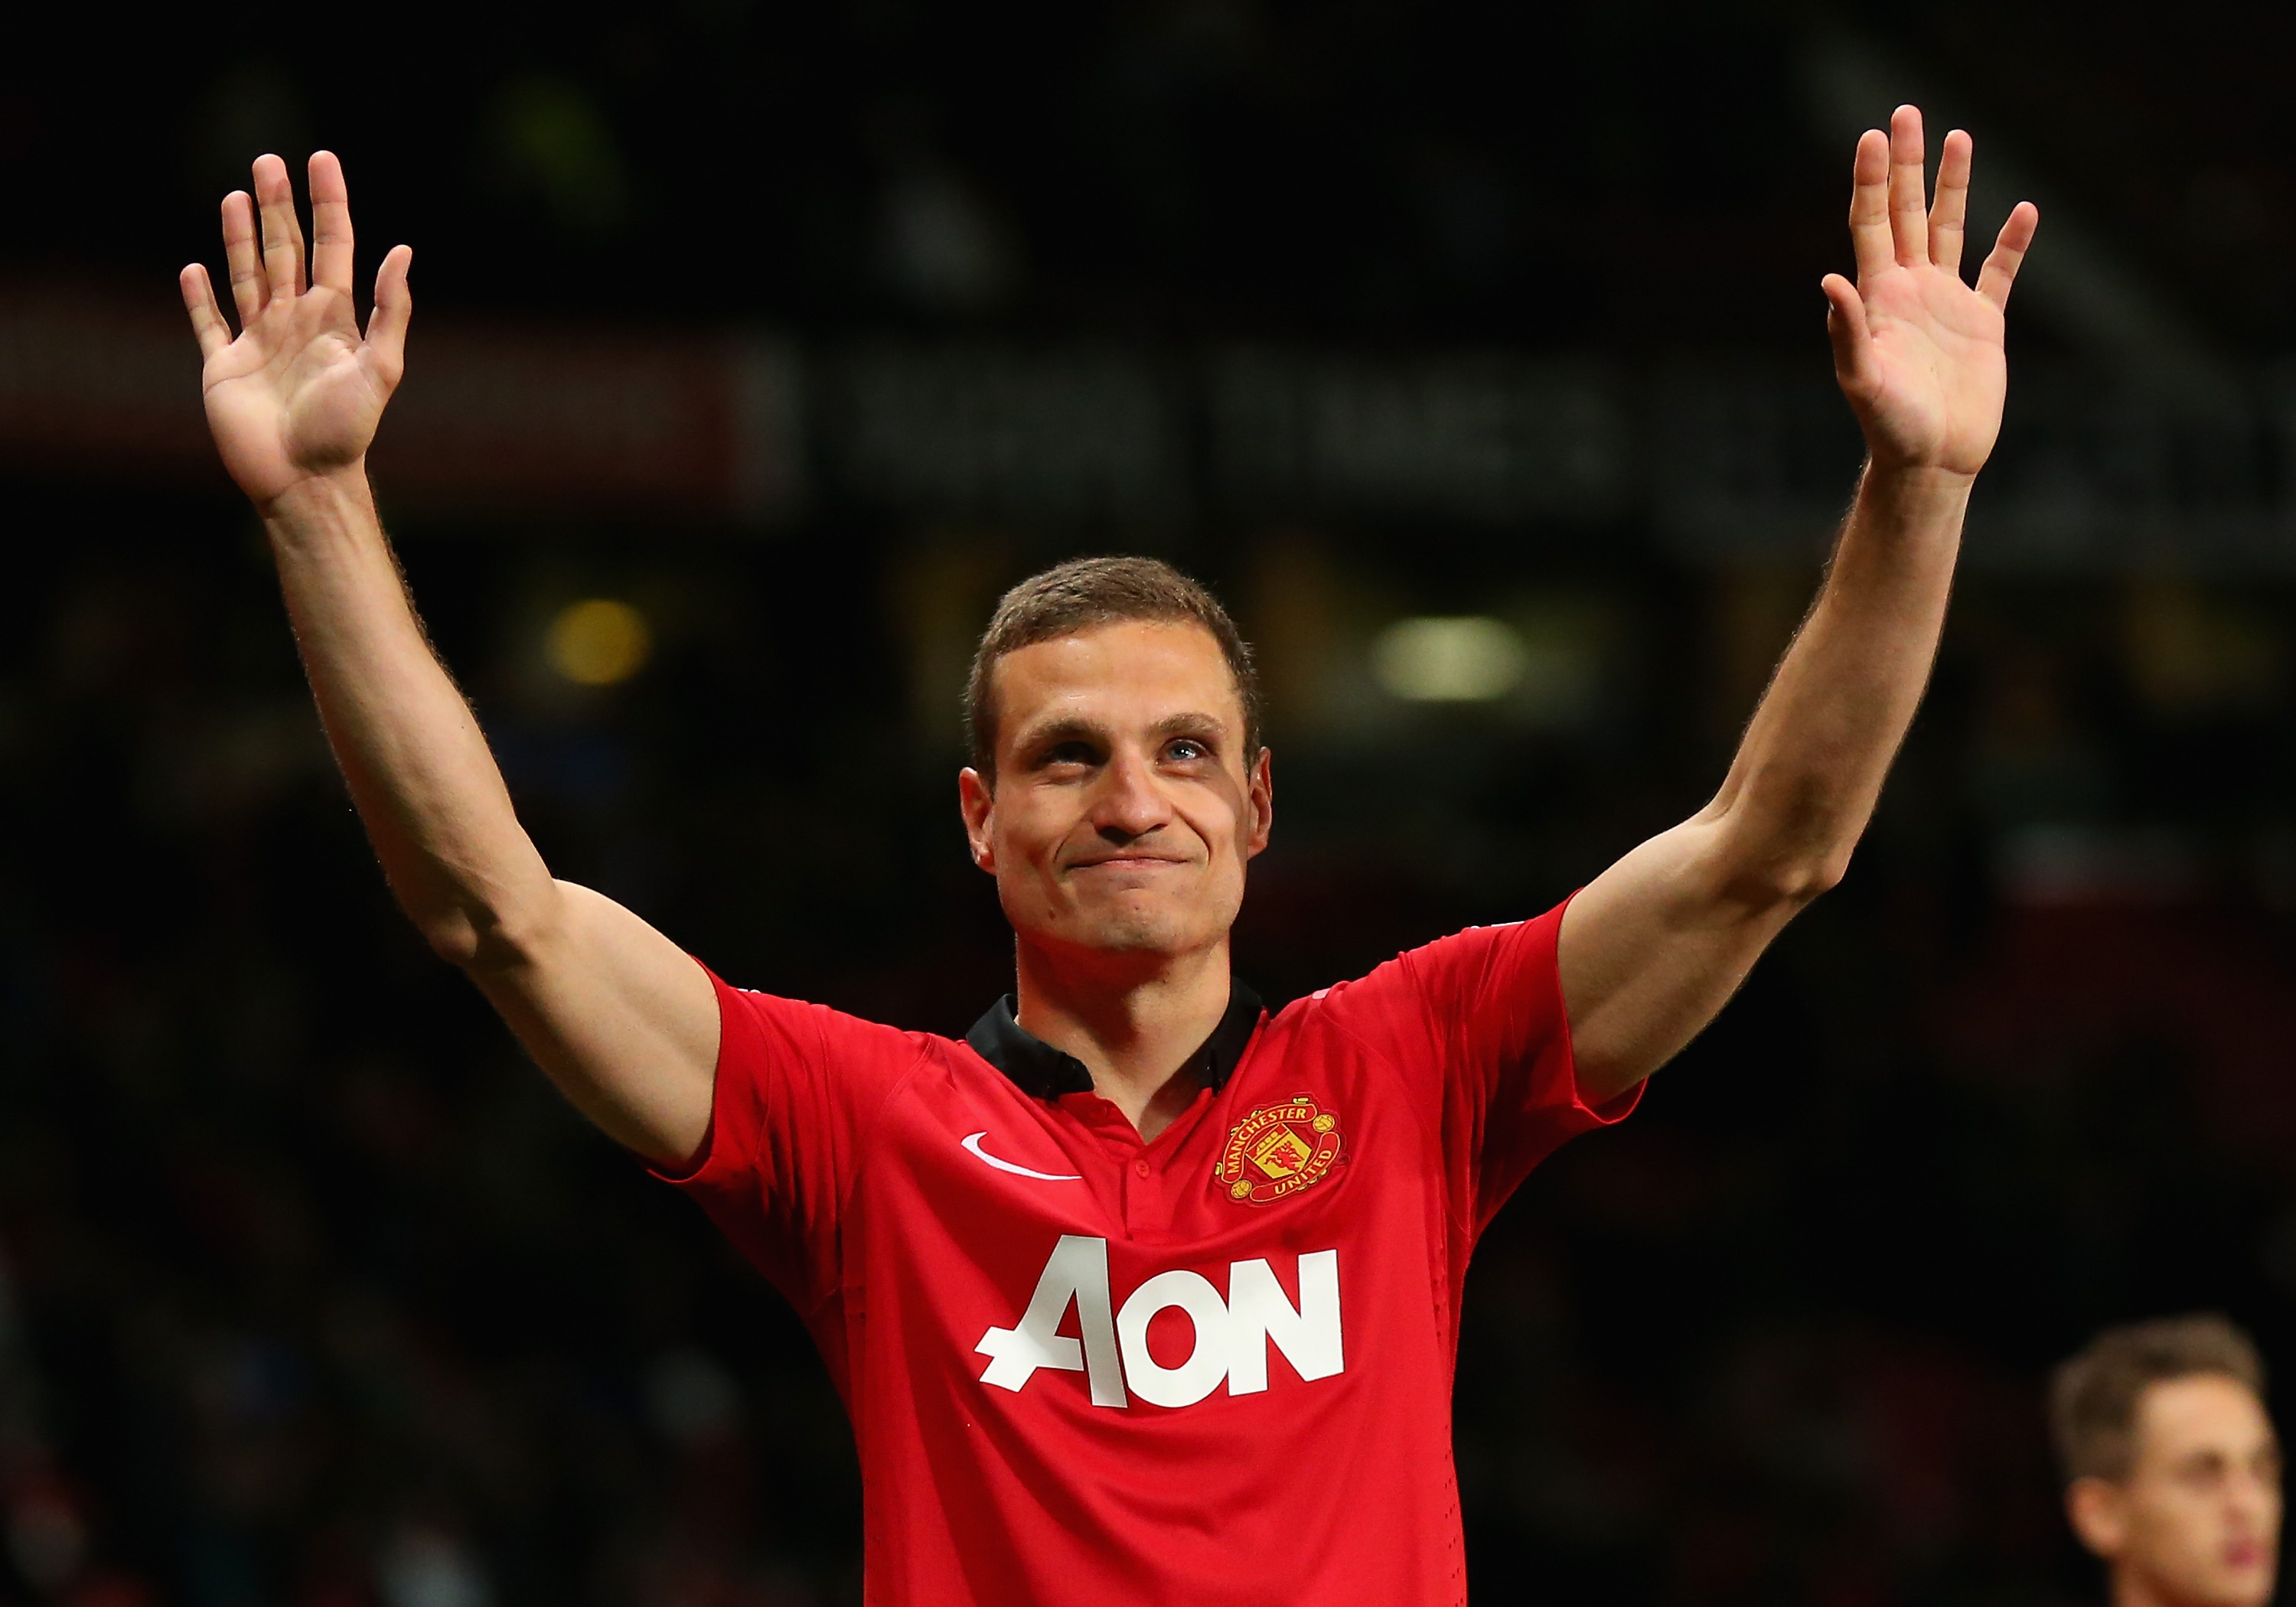 MANCHESTER, ENGLAND - MAY 06: Nemanja Vidic of Manchester United salutes the fans after his final home game for the club at the end of the Barclays Premier League match between Manchester United and Hull City at Old Trafford on May 6, 2014 in Manchester, England. (Photo by Alex Livesey/Getty Images)